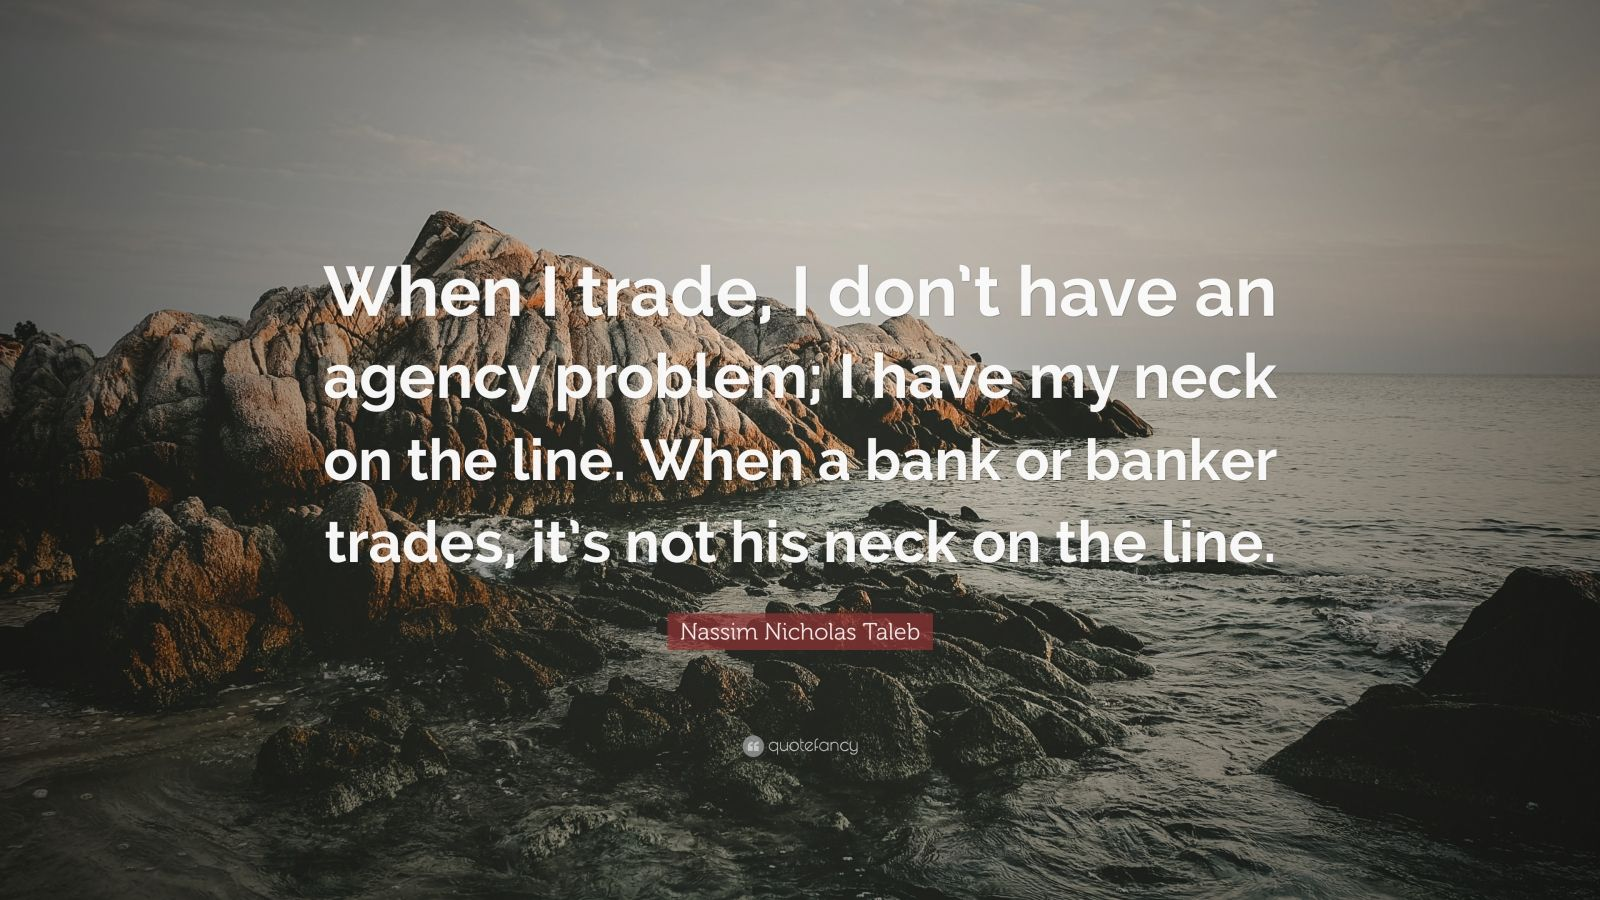 """Nassim Nicholas Taleb Quote: """"When I trade, I don't have an agency problem; I have my neck on the line. When a bank or banker trades, it's not his neck on the line."""""""